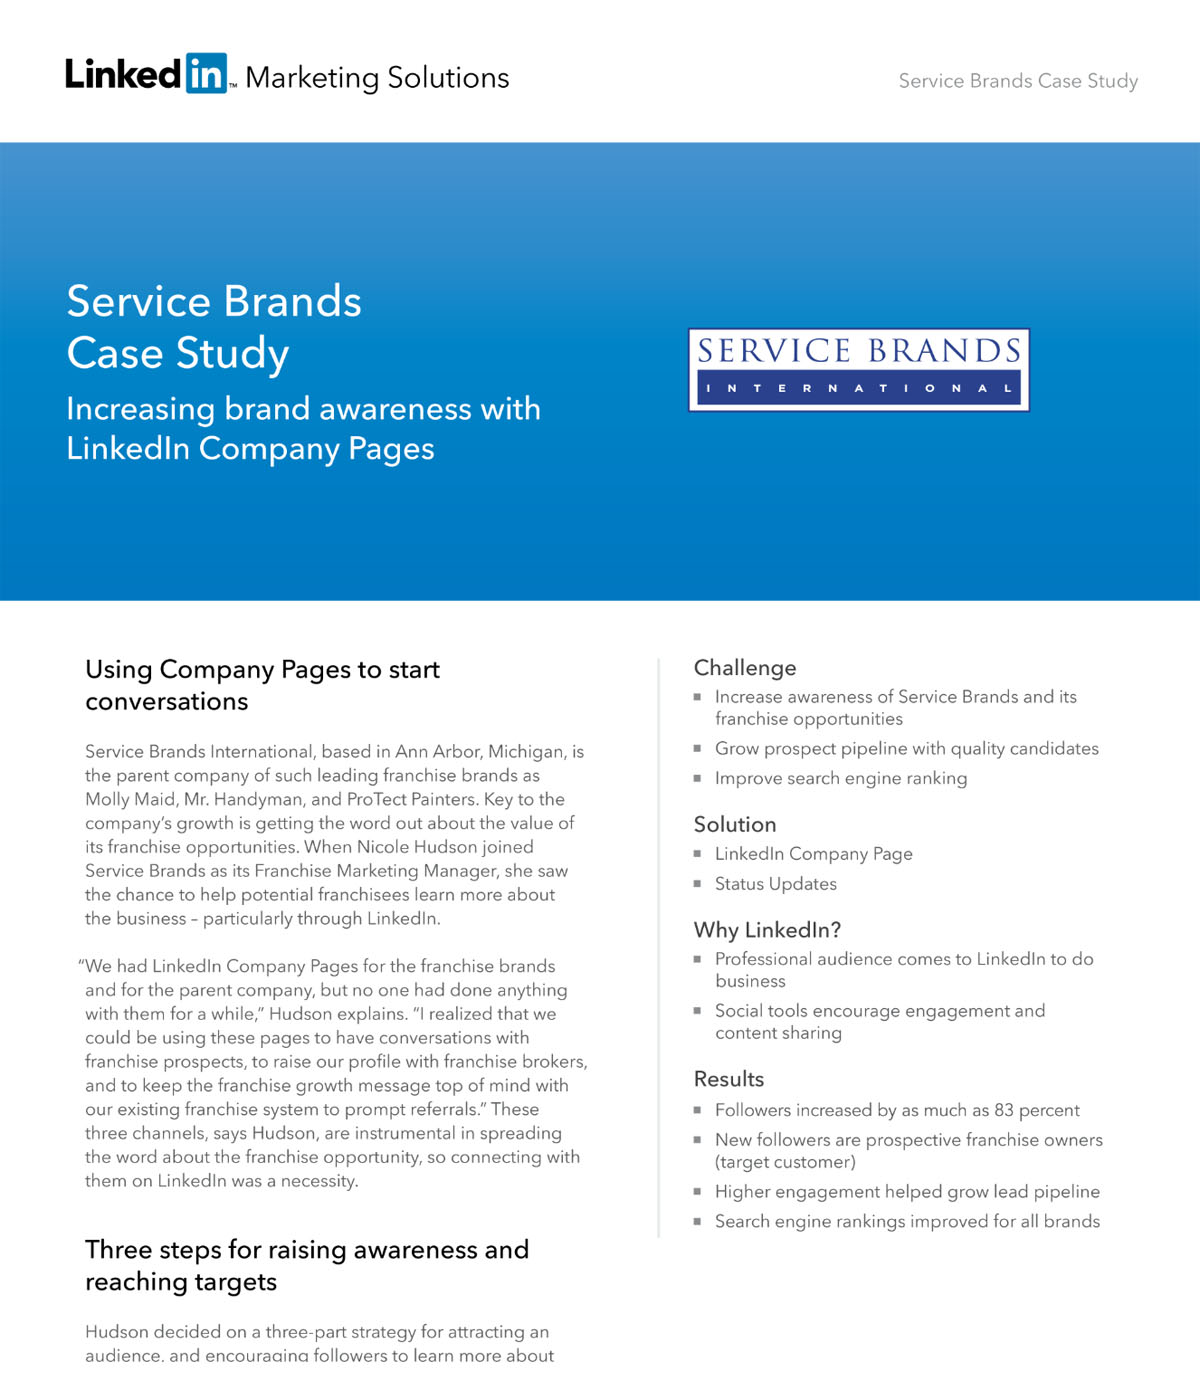 case study infographic - example from linkedin